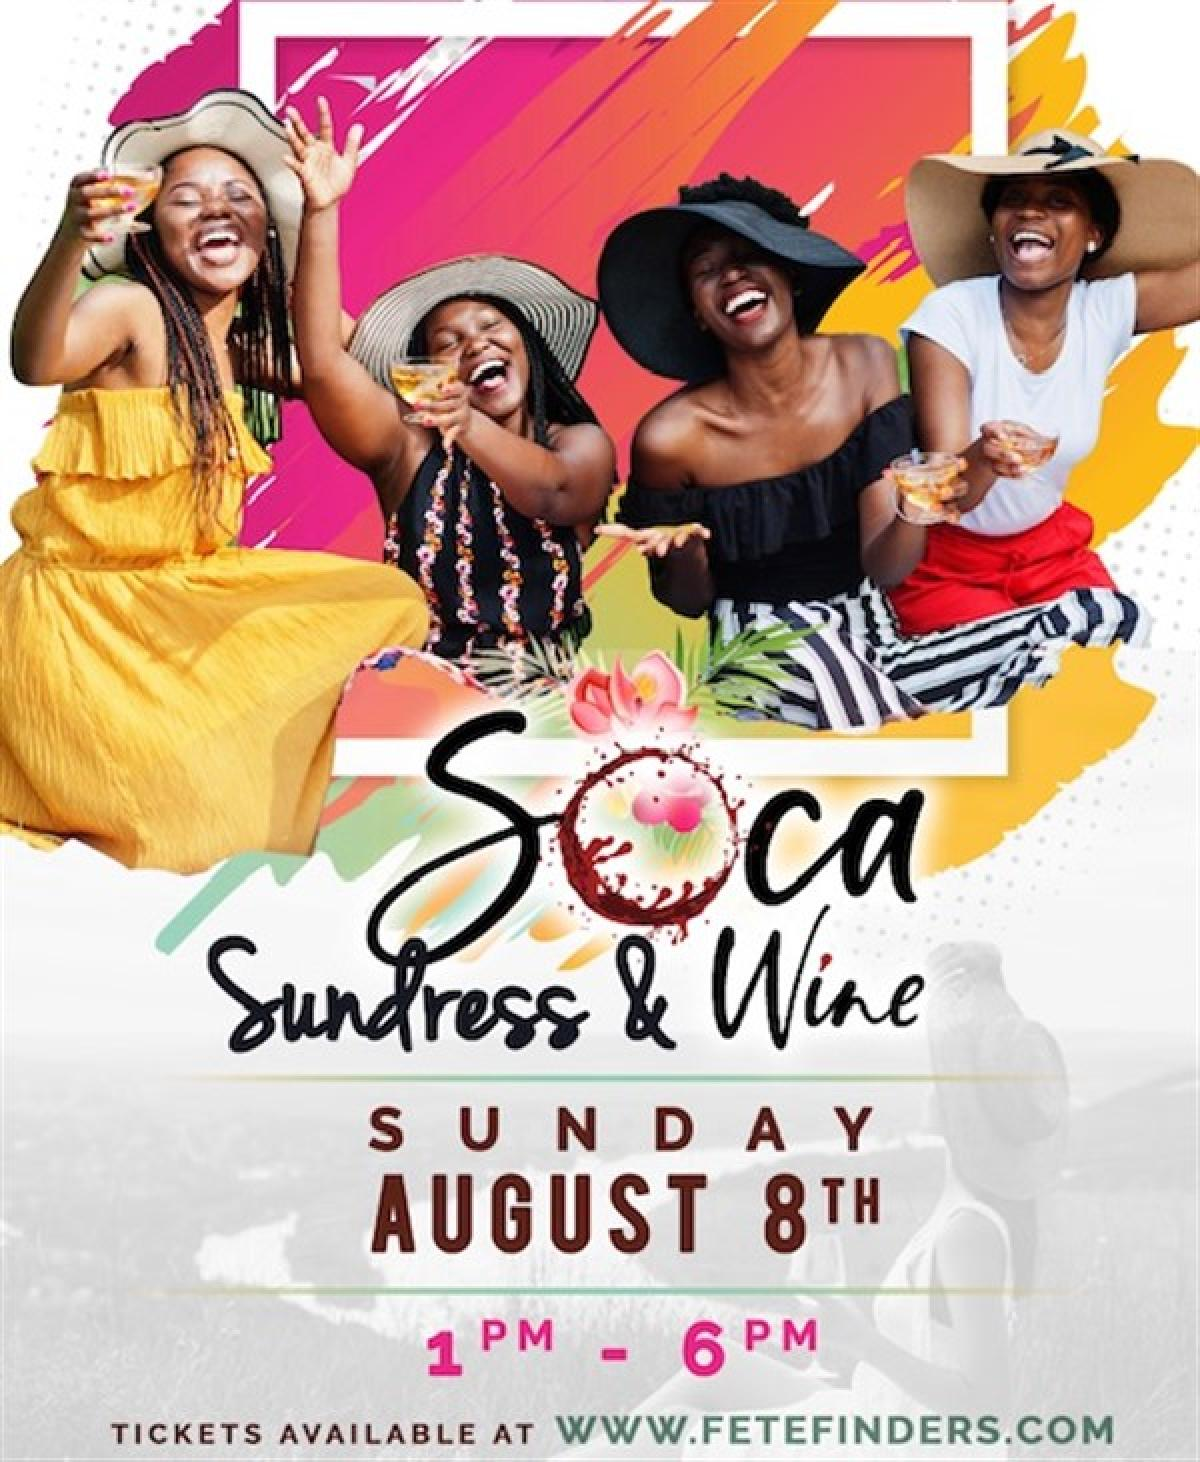 Sundress & Wine flyer or graphic.